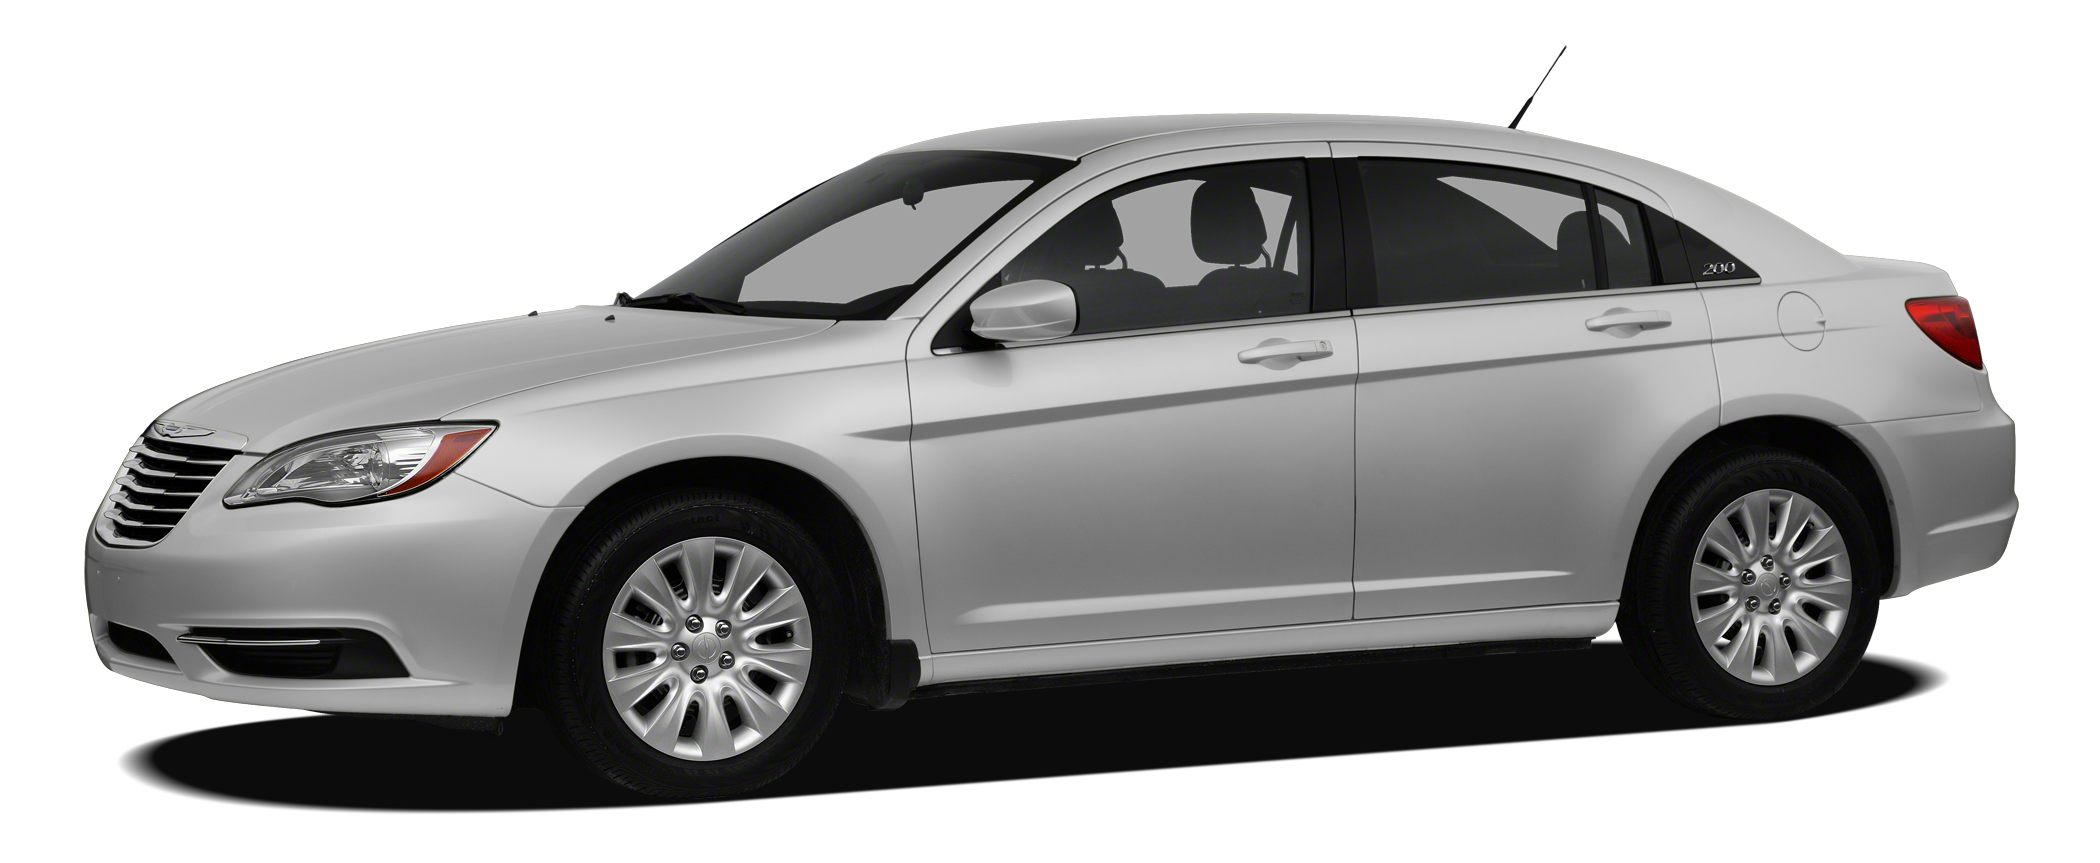 2011 Chrysler 200 Touring Land a steal on this 2011 Chrysler 200 Touring before someone else snatc